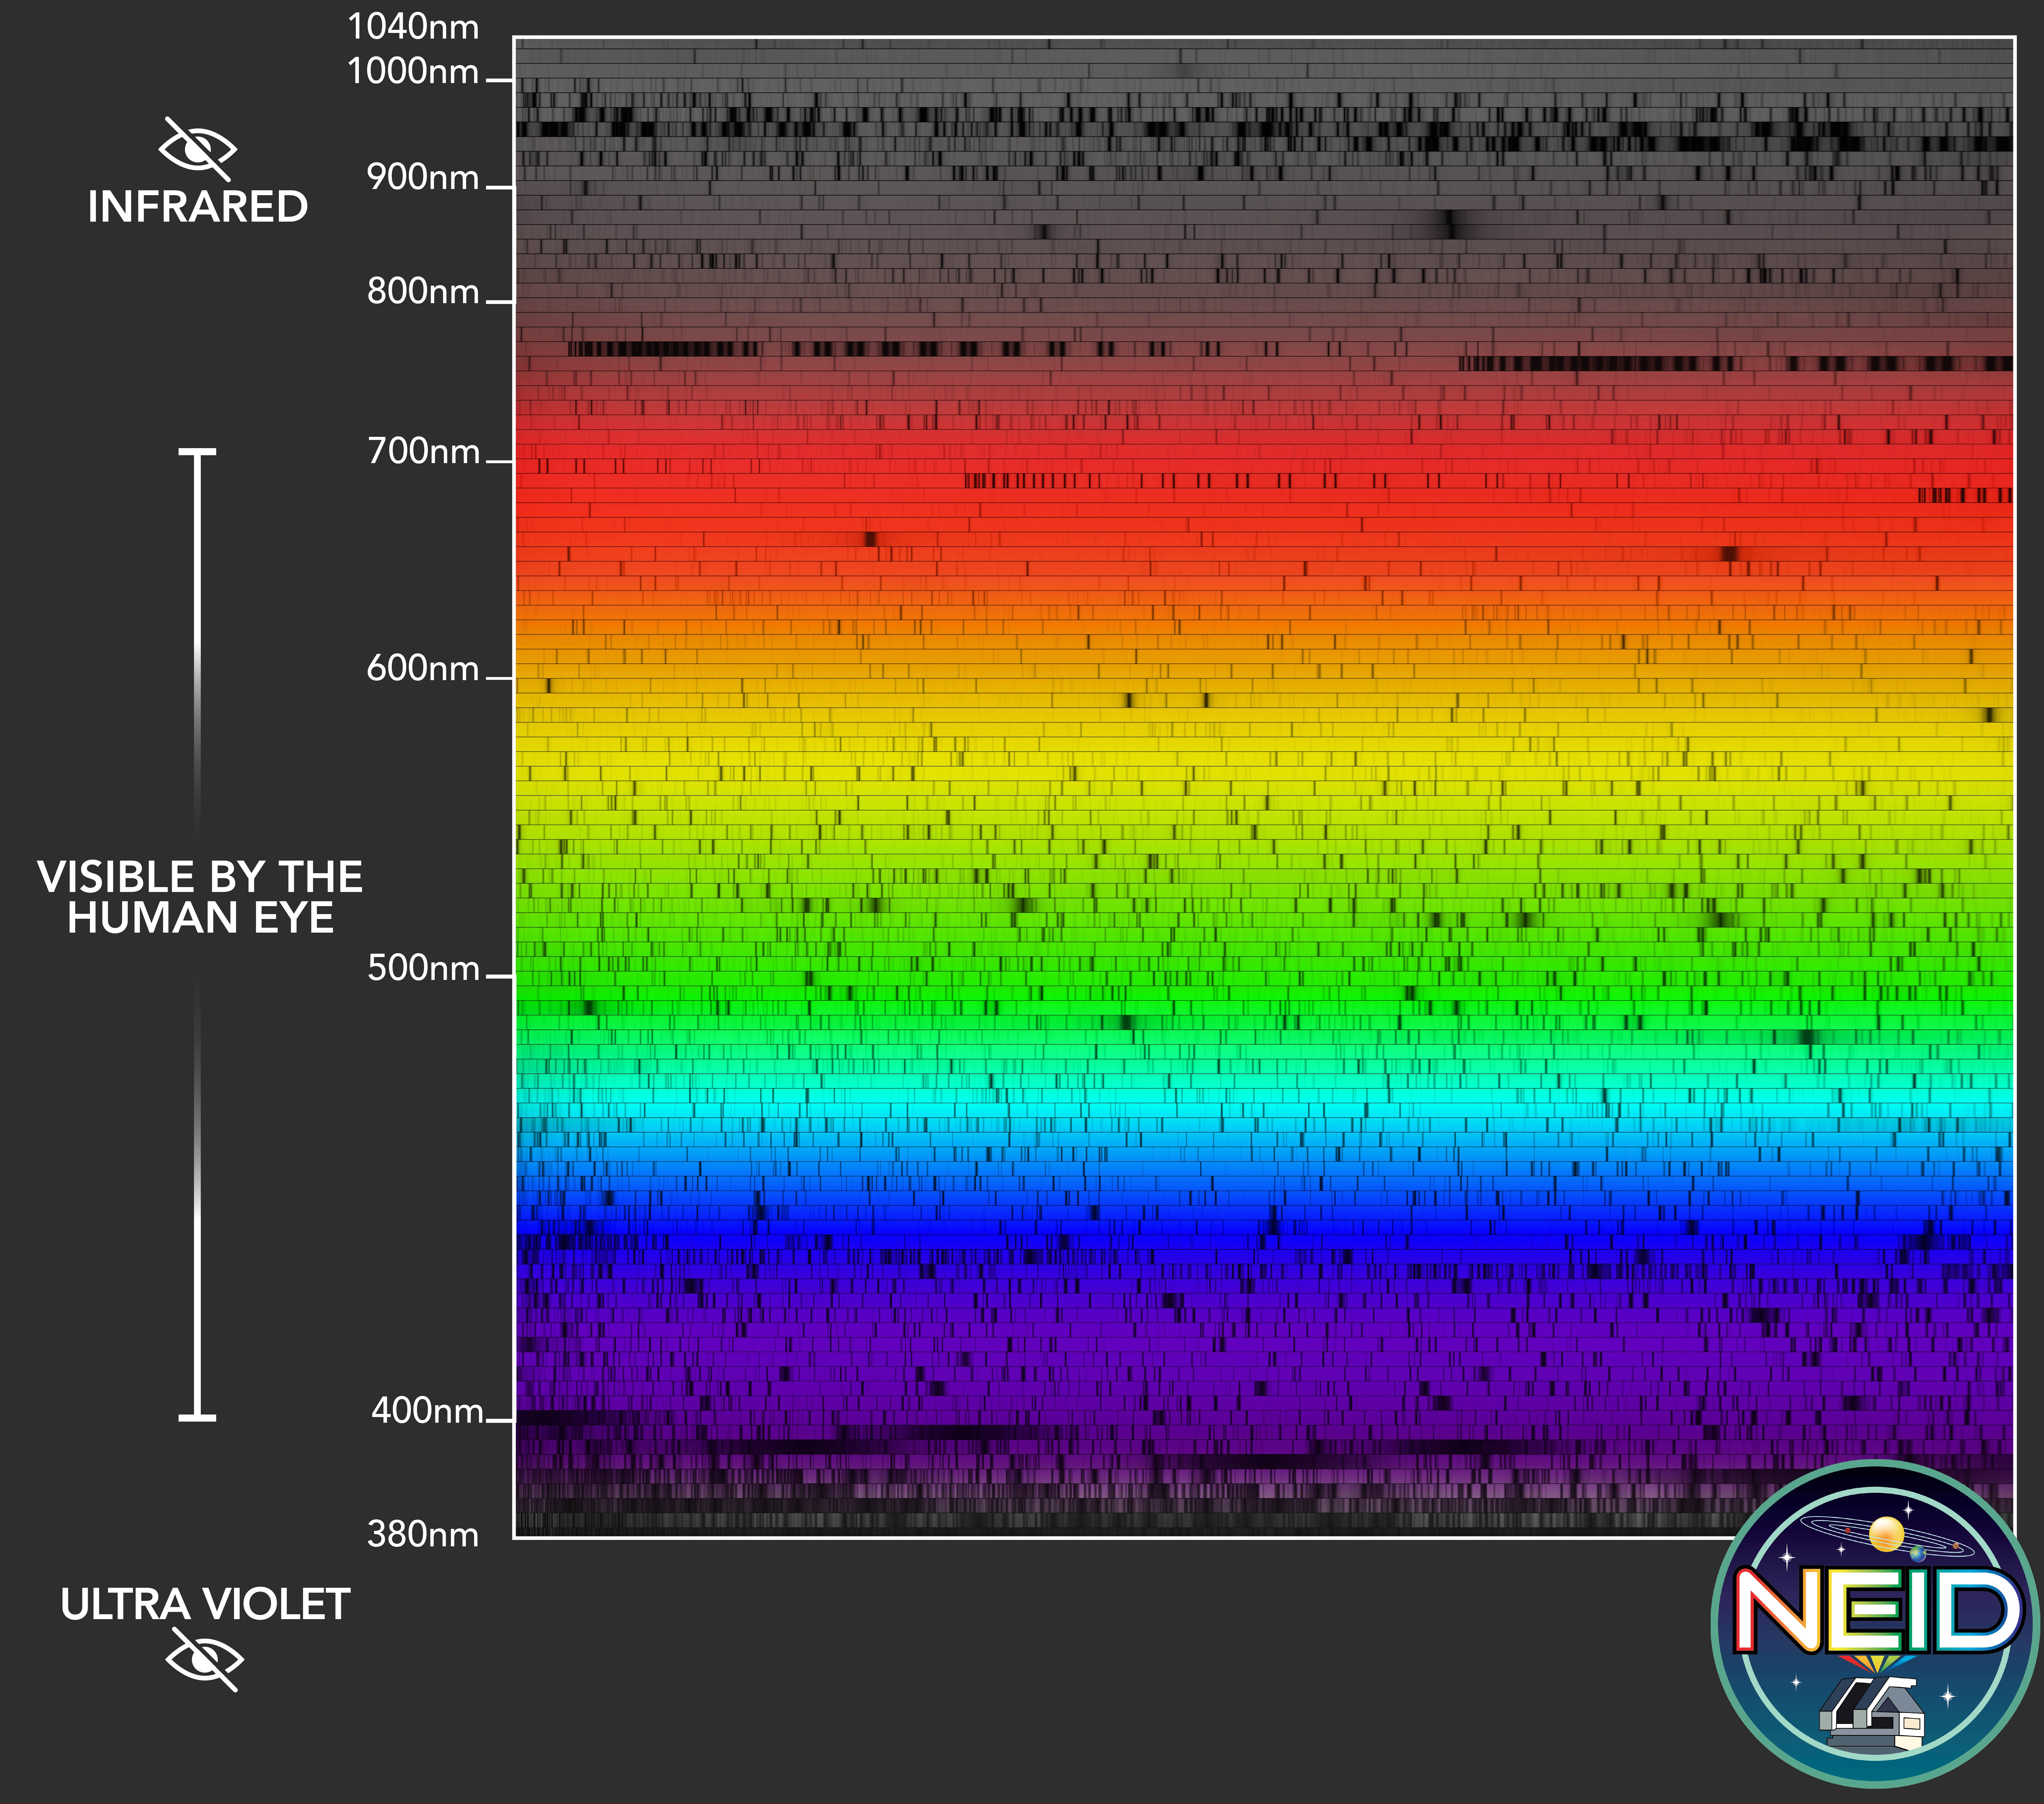 a chart of data collected by NEID visible to the human eye